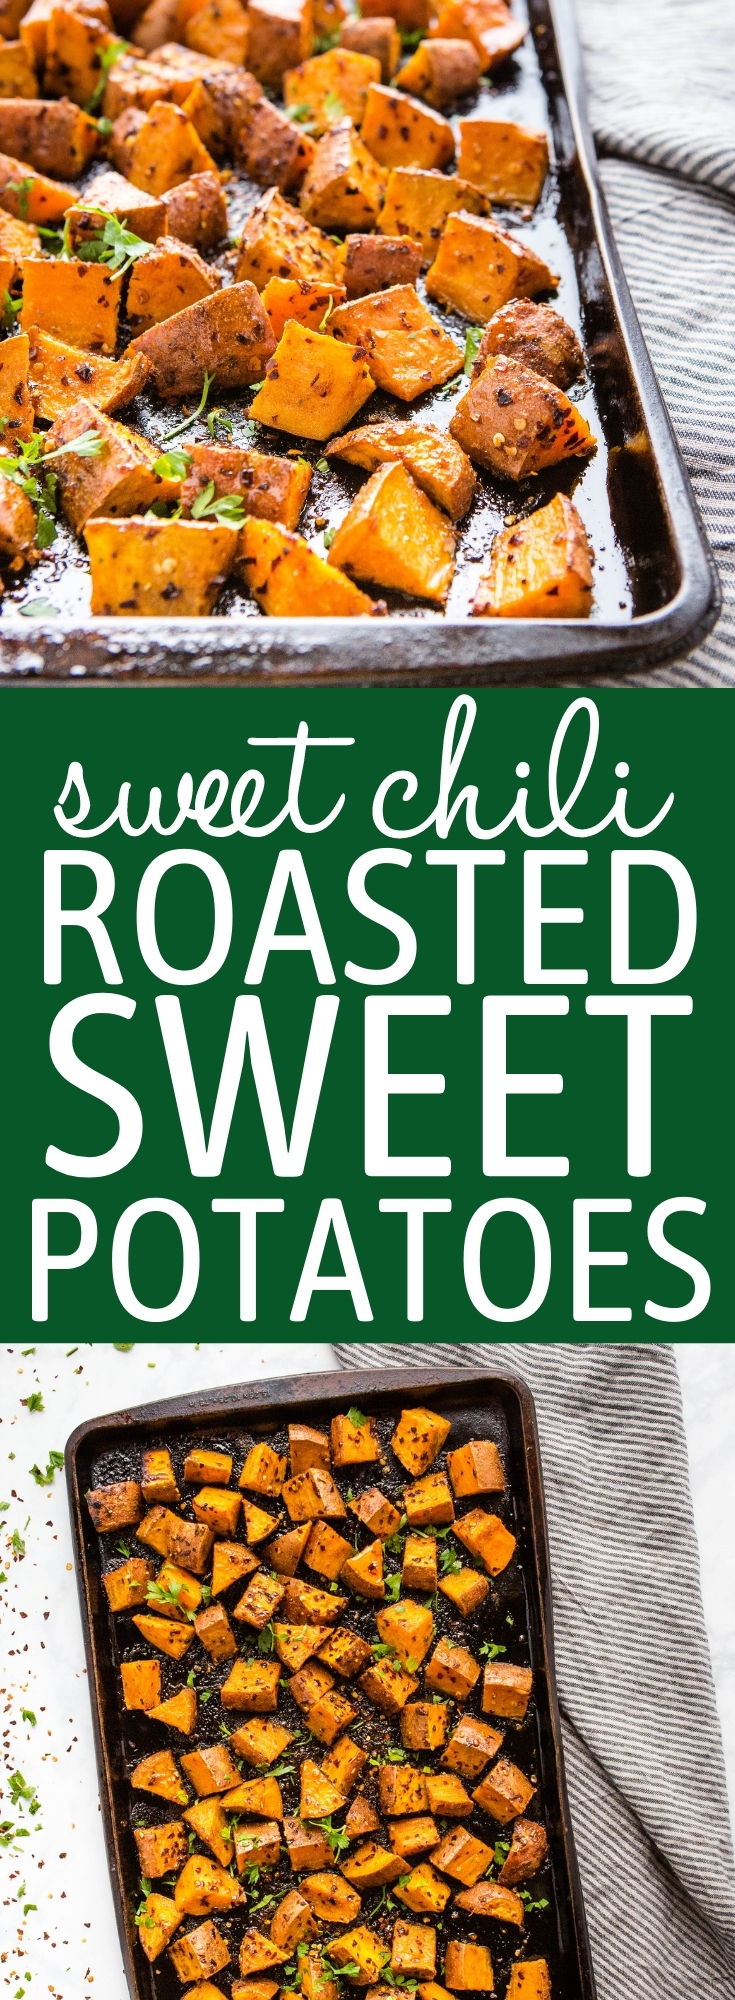 These Spicy Roasted Sweet Potatoes are easy-to-make pan-roasted sweet potatoes flavoured with sweet honey, smoky paprika and spicy chili. Easy to make in under 25 minutes! Recipe from thebusybaker.ca! #sweetpotatoes #roasted #sweetchili #sidedish #spicy #vegetarian via @busybakerblog